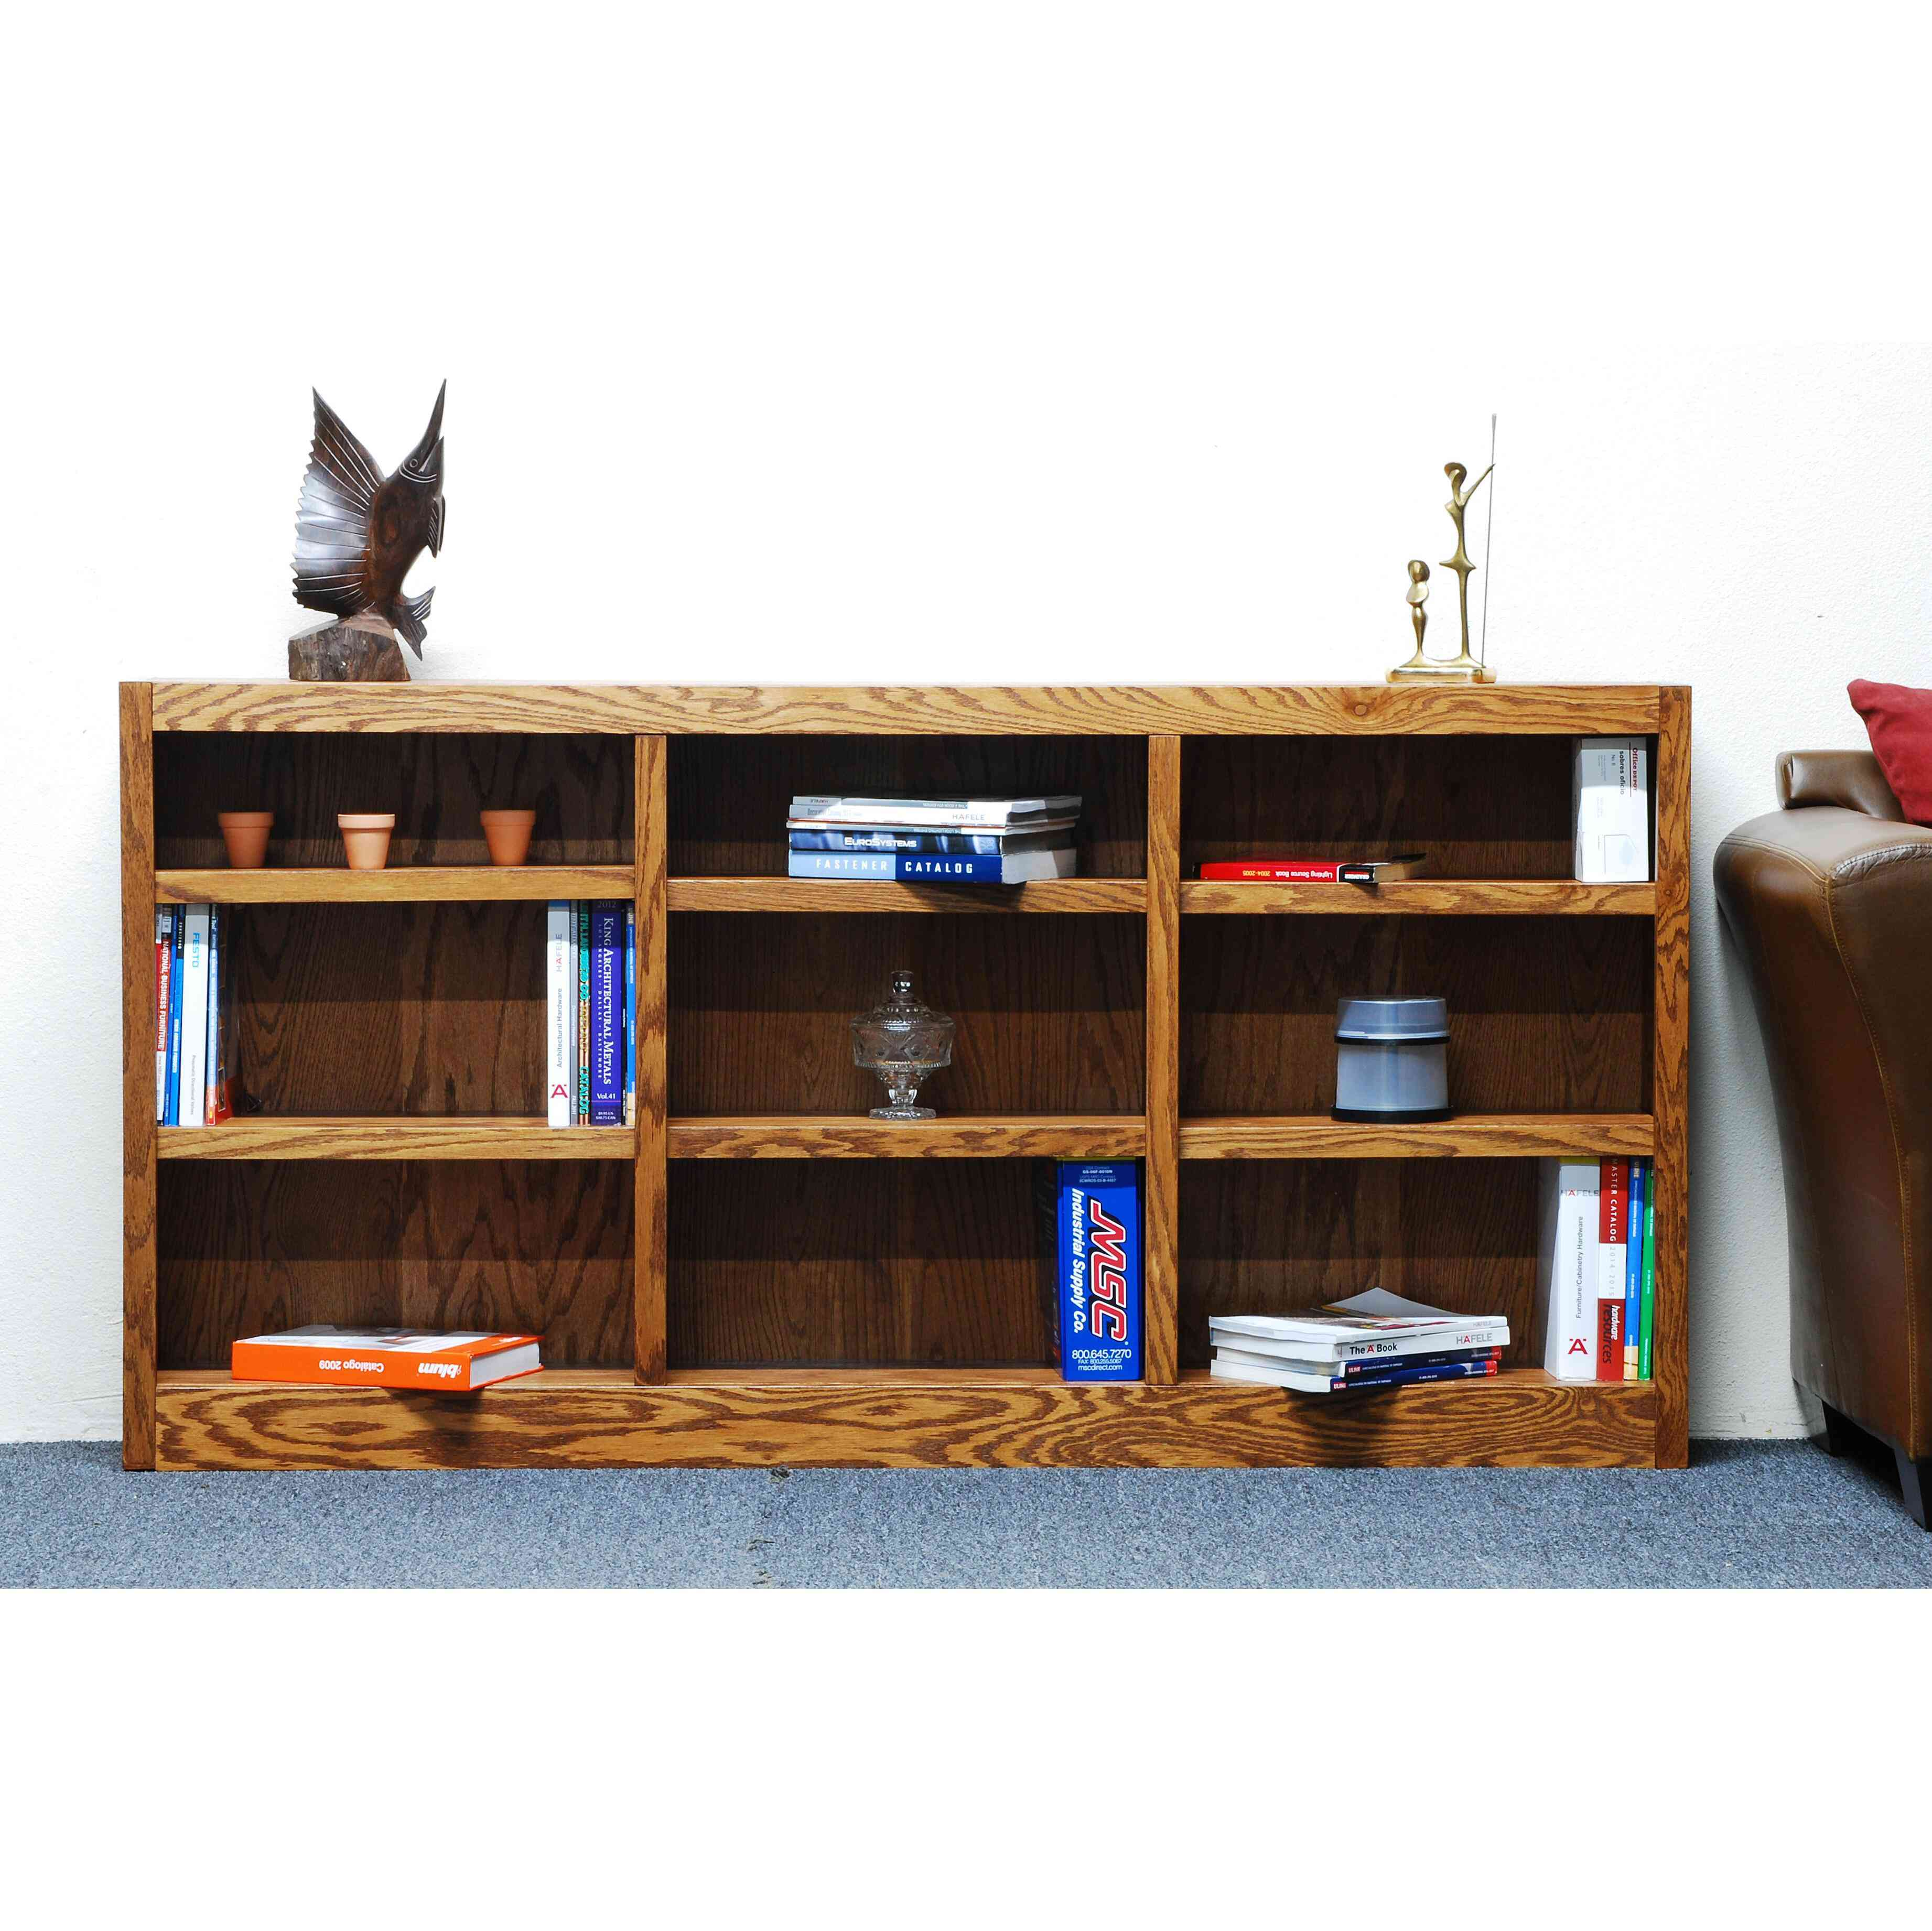 The 10 Best Bookcases Of 2021